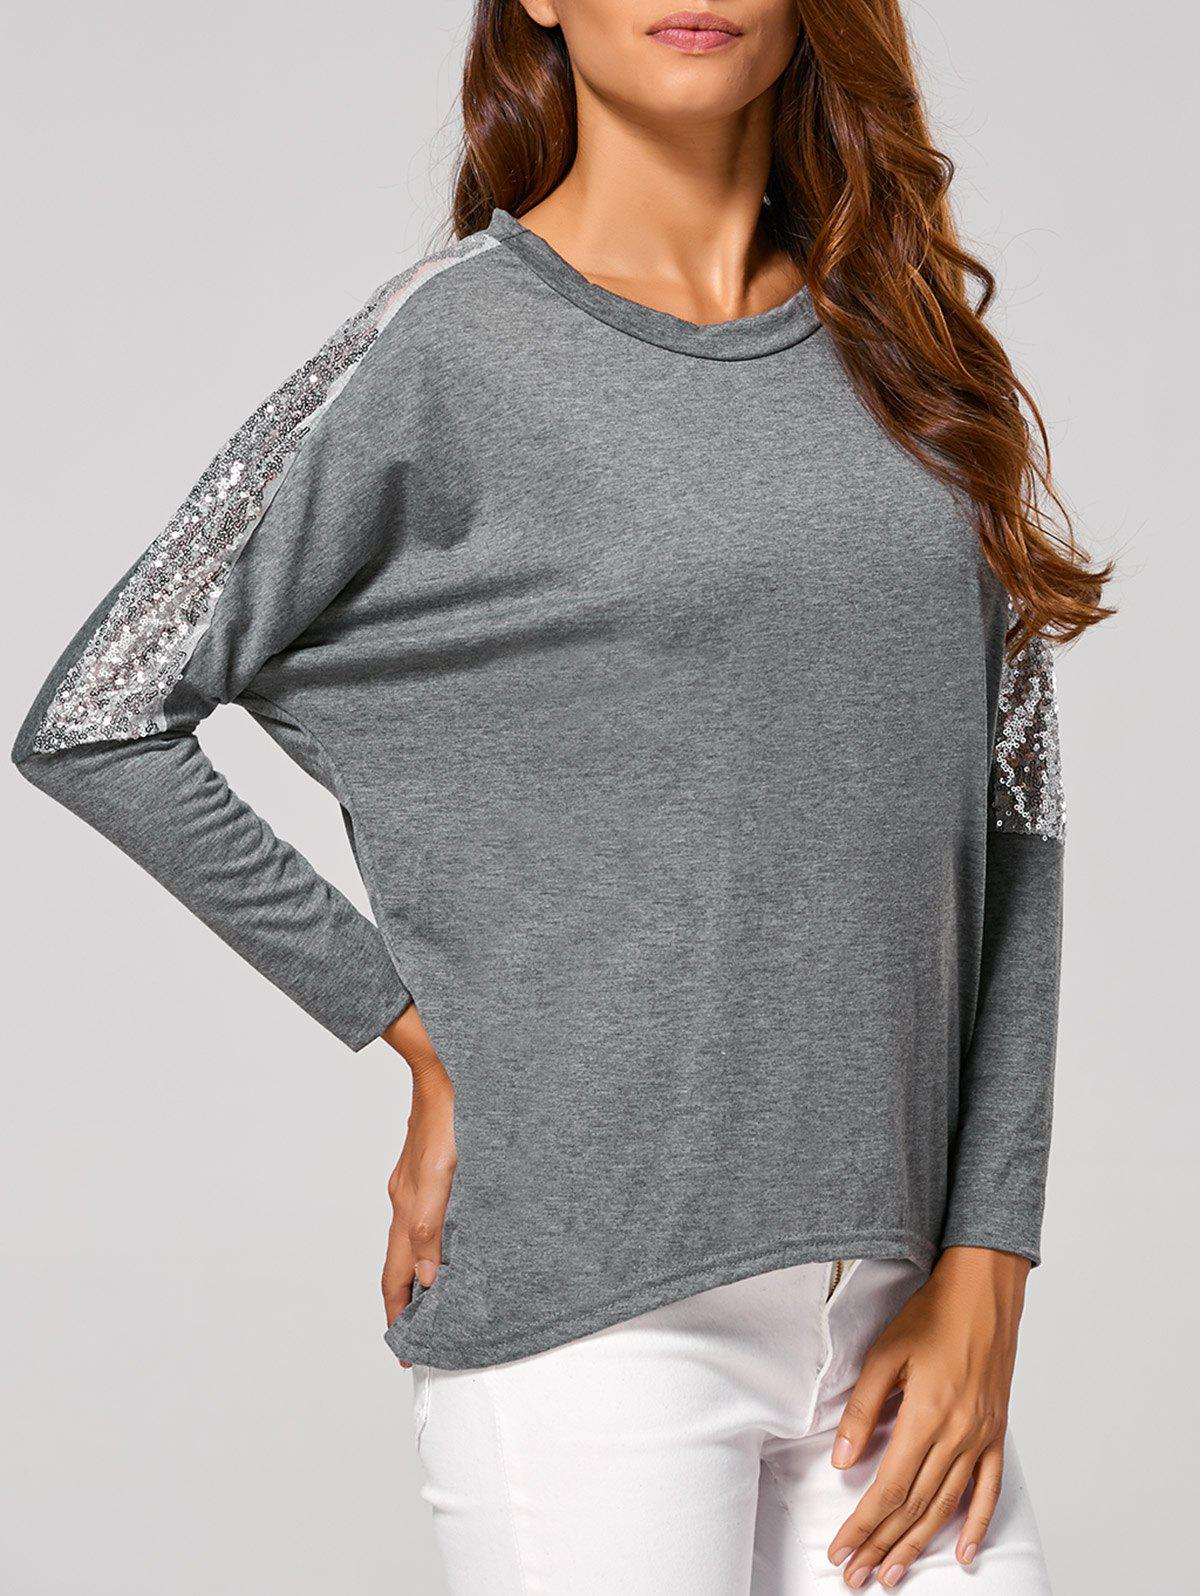 Fancy Batwing High Low Sequin T-Shirt